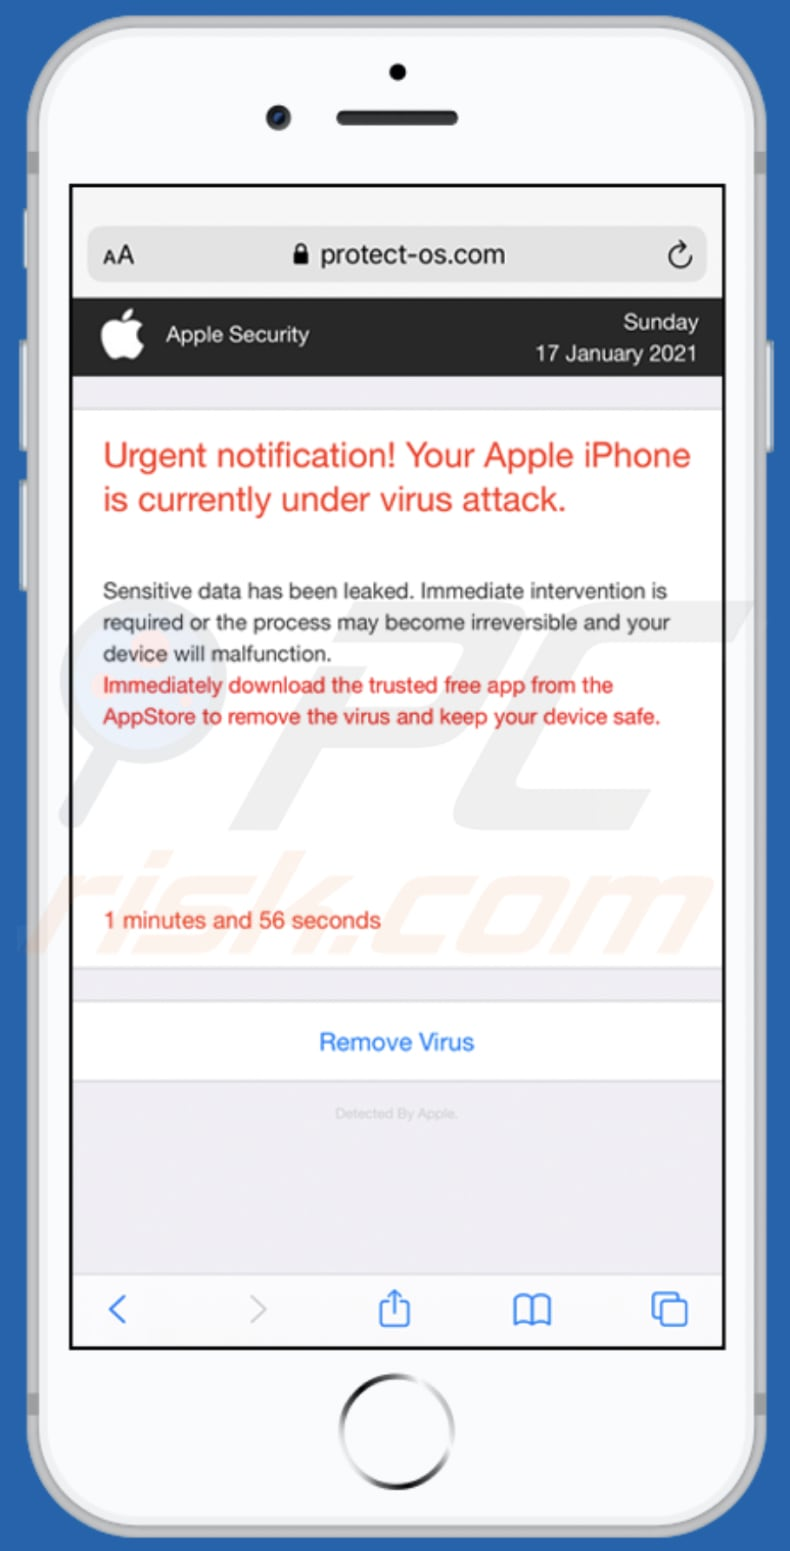 Your Apple iPhone is currently under virus attack scam